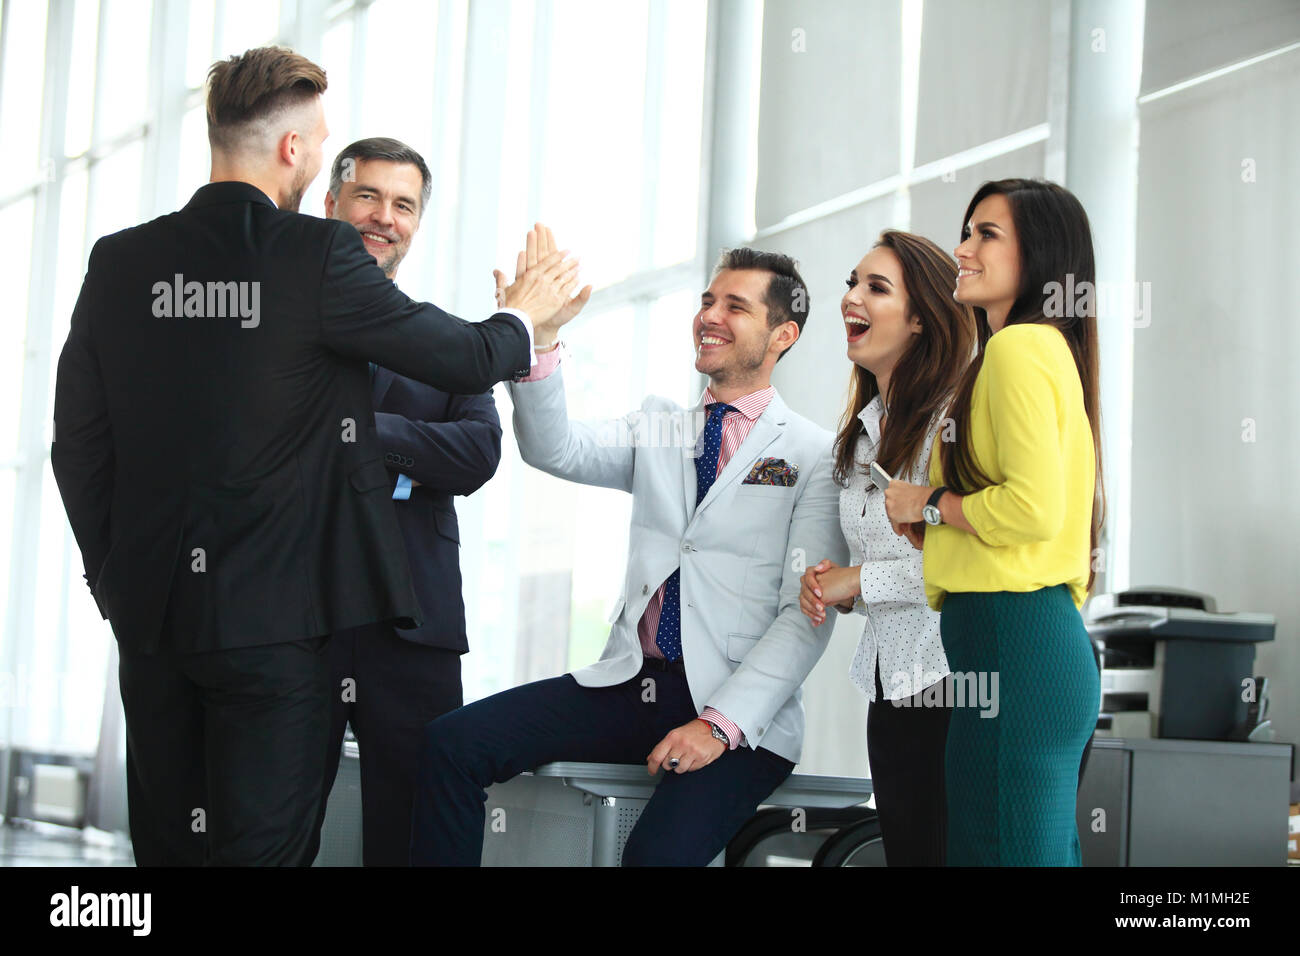 Happy successful multiracial business team giving a high fives gesture as they laugh and cheer their success - Stock Image